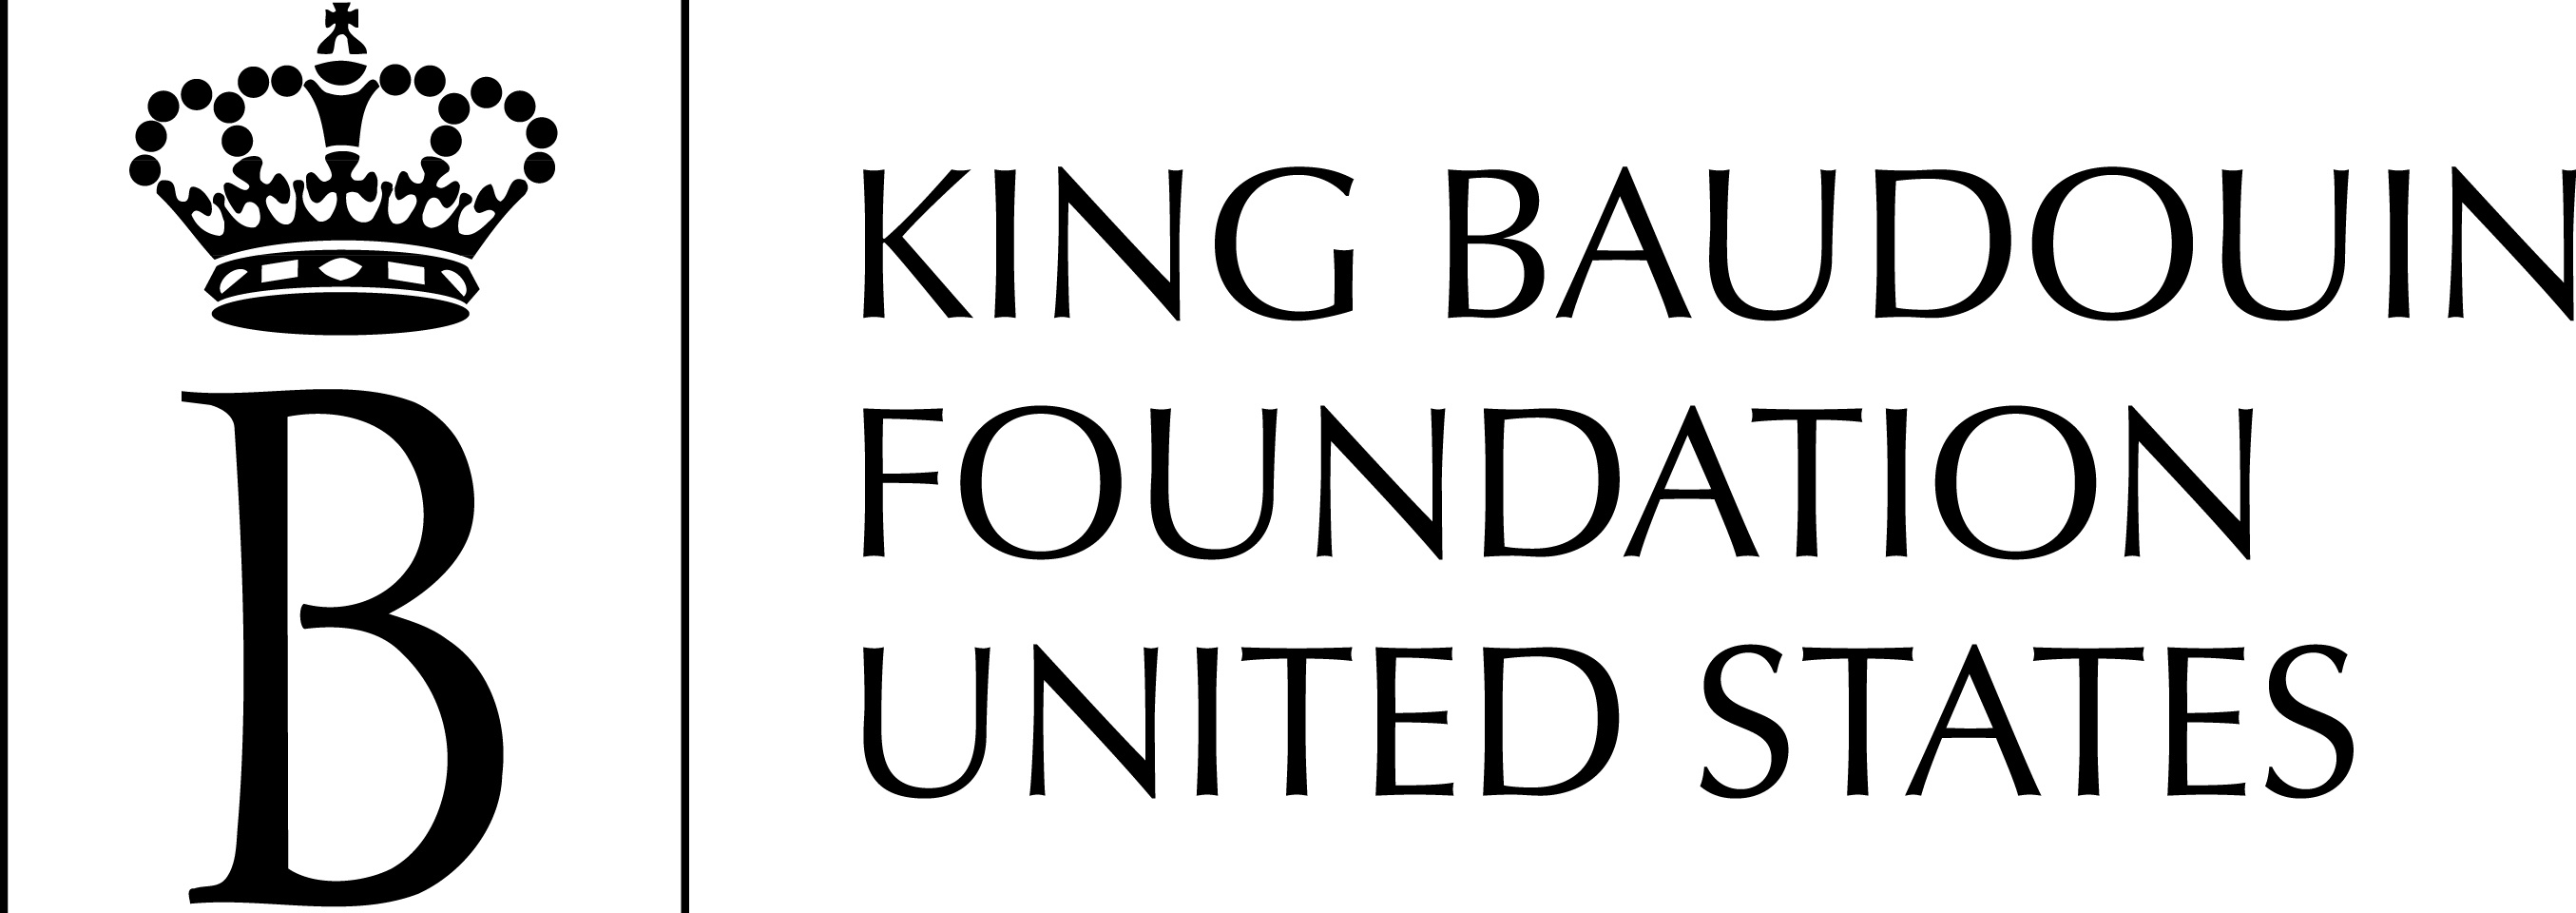 King Baudoin Foundation United State